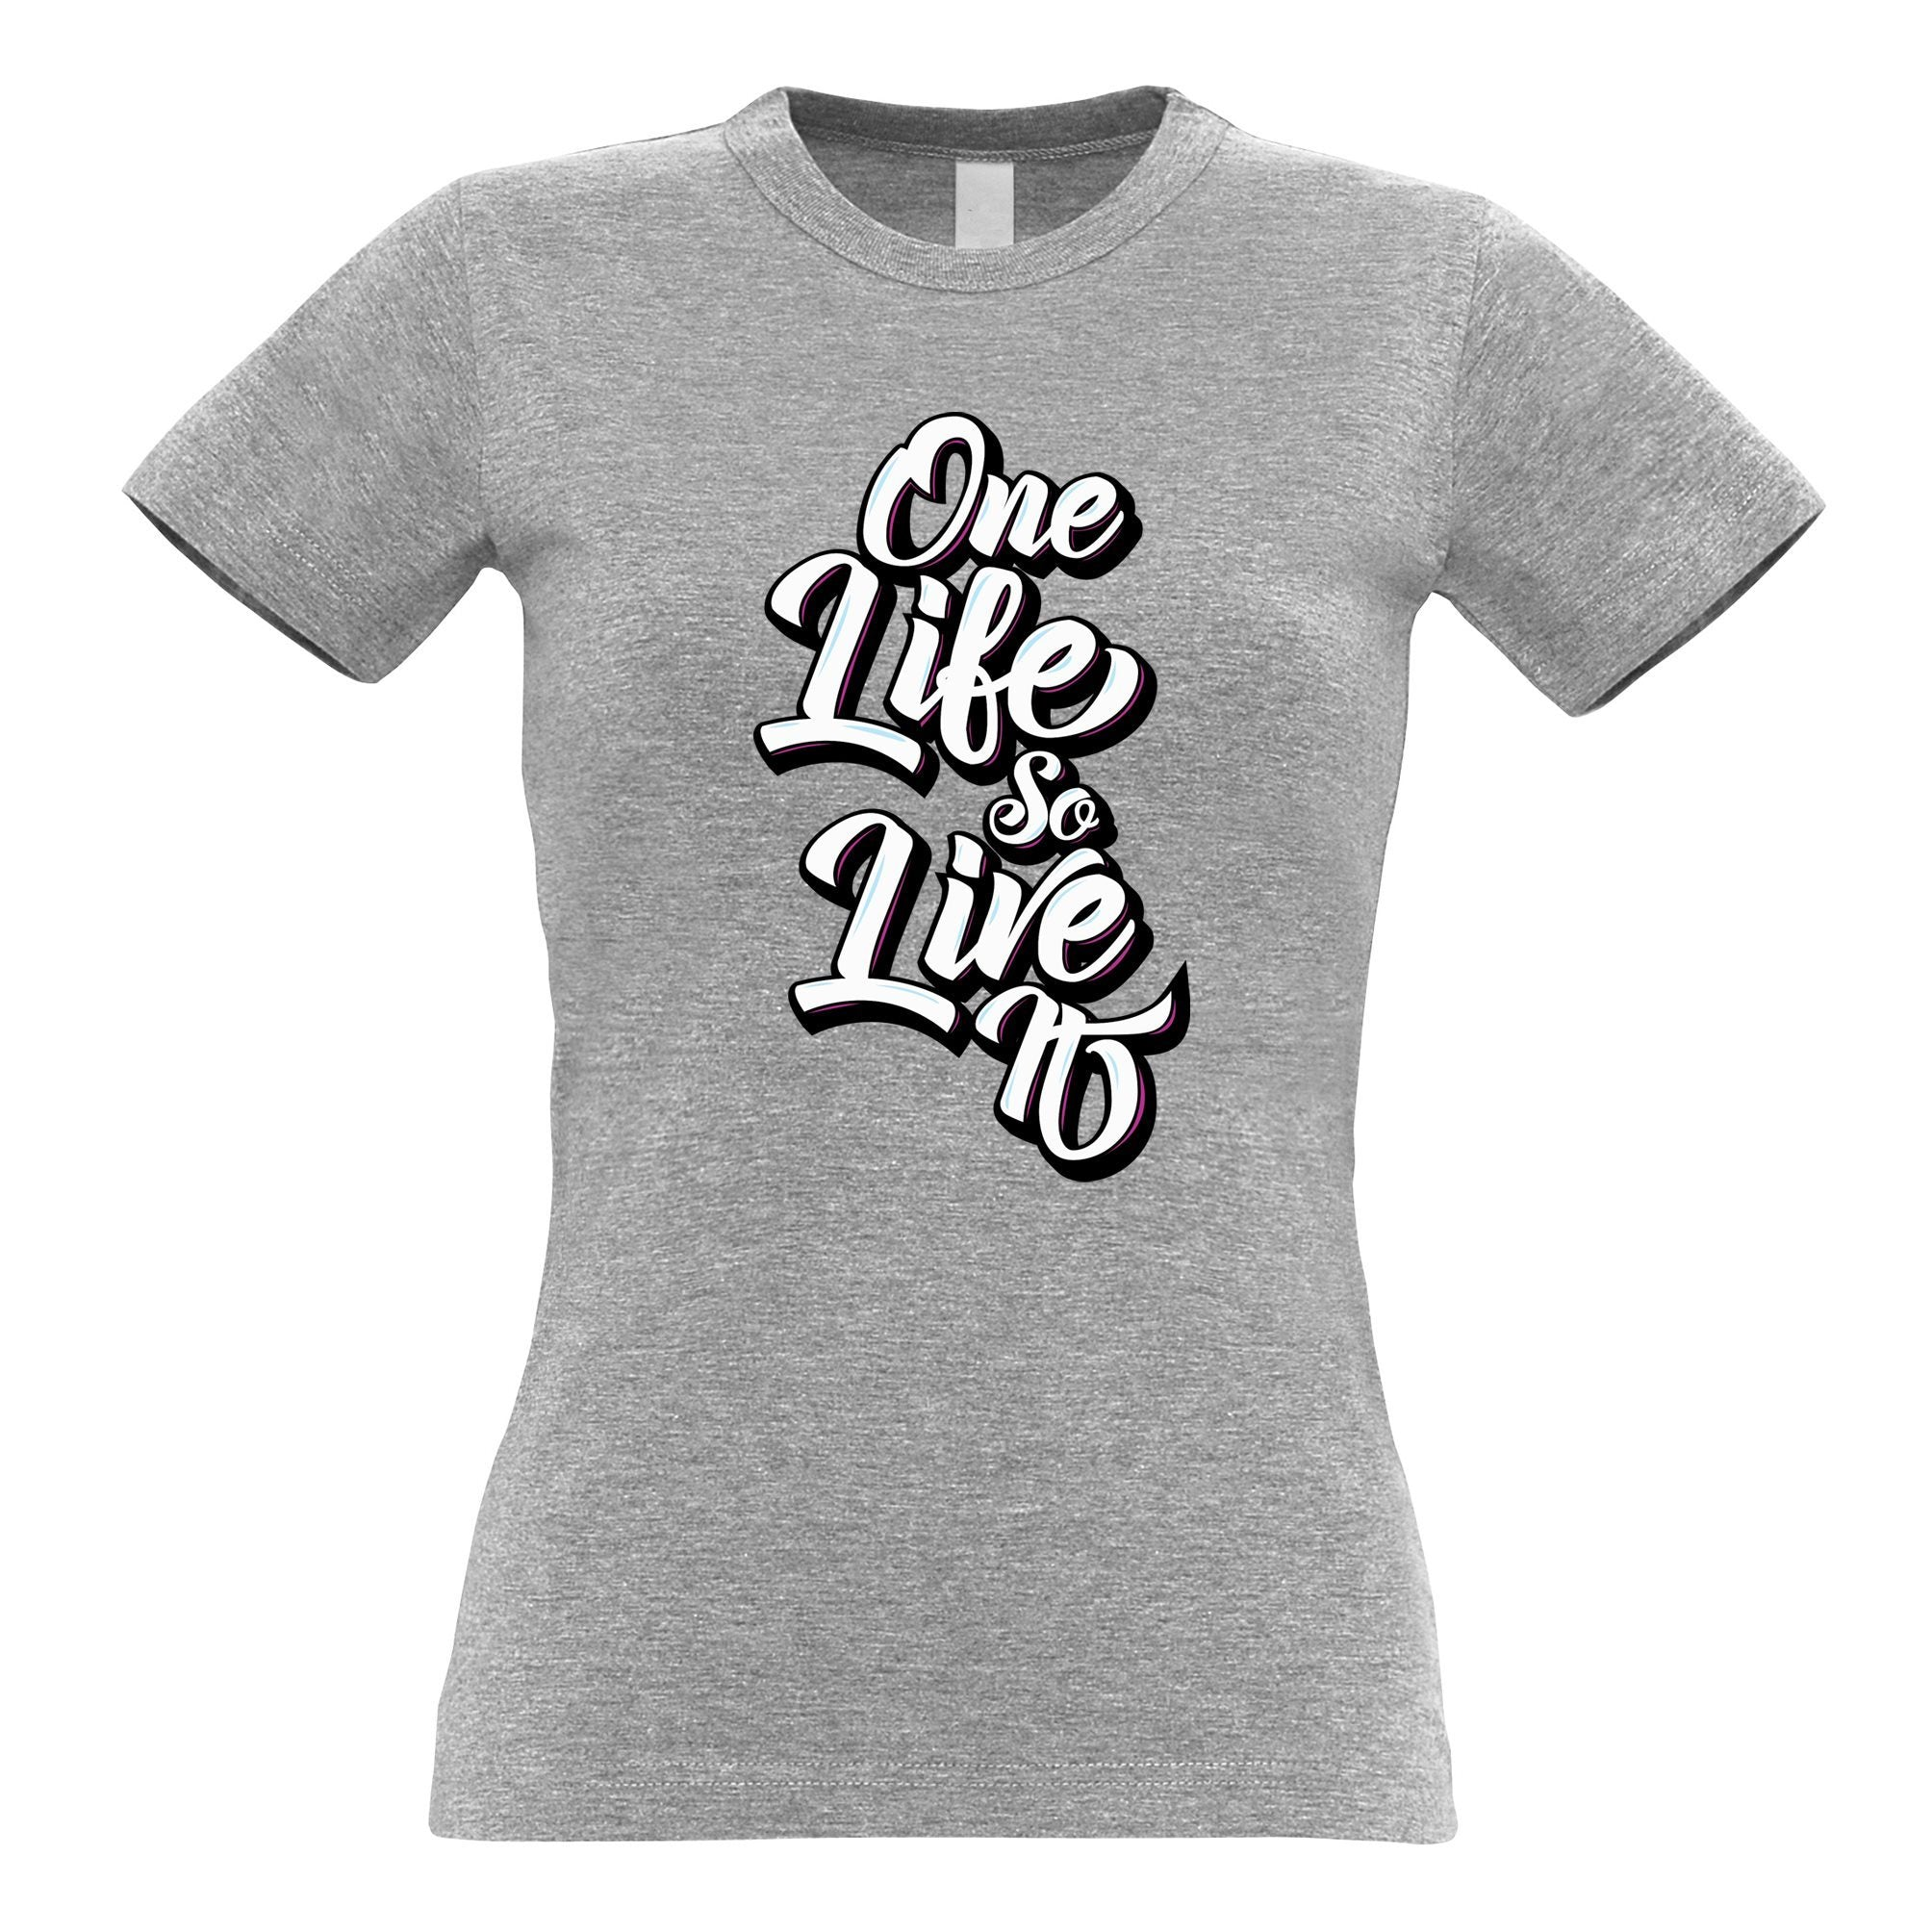 Inspirational Womens TShirt You Have One Life, So Live It